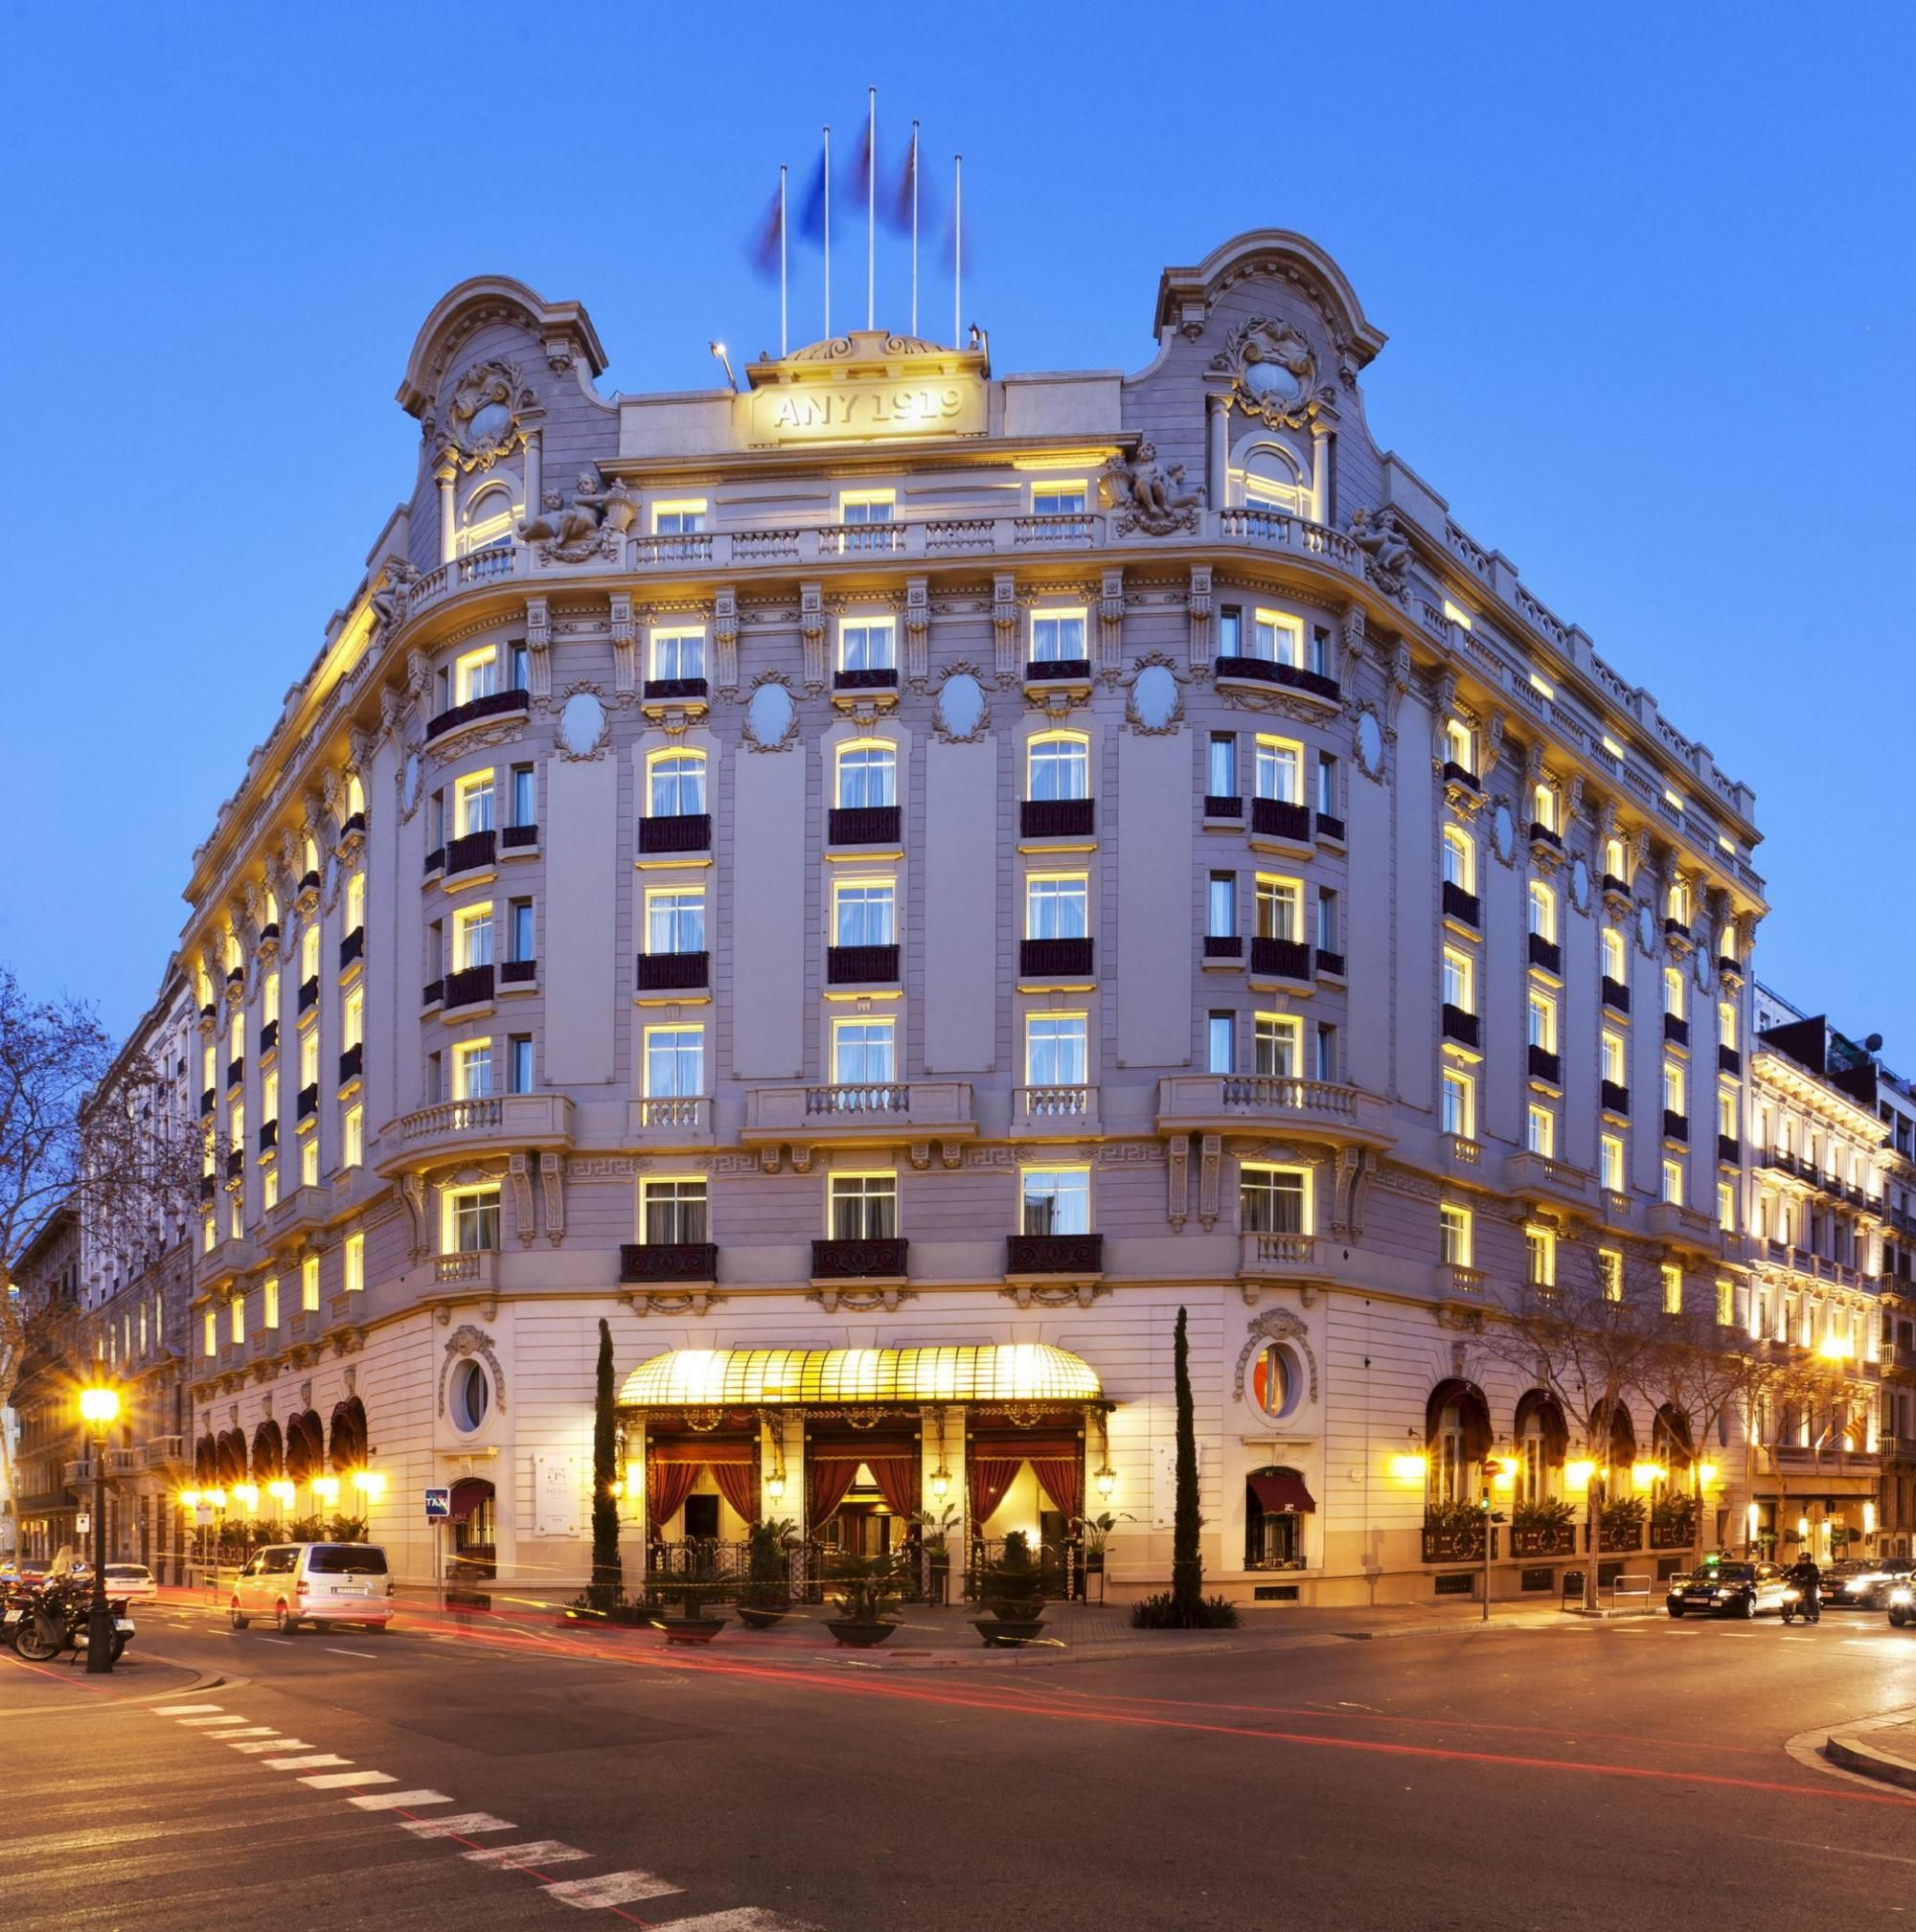 Foto e video el palace hotel barcelona 5 stelle lusso l for Hotel 4 stelle barcellona